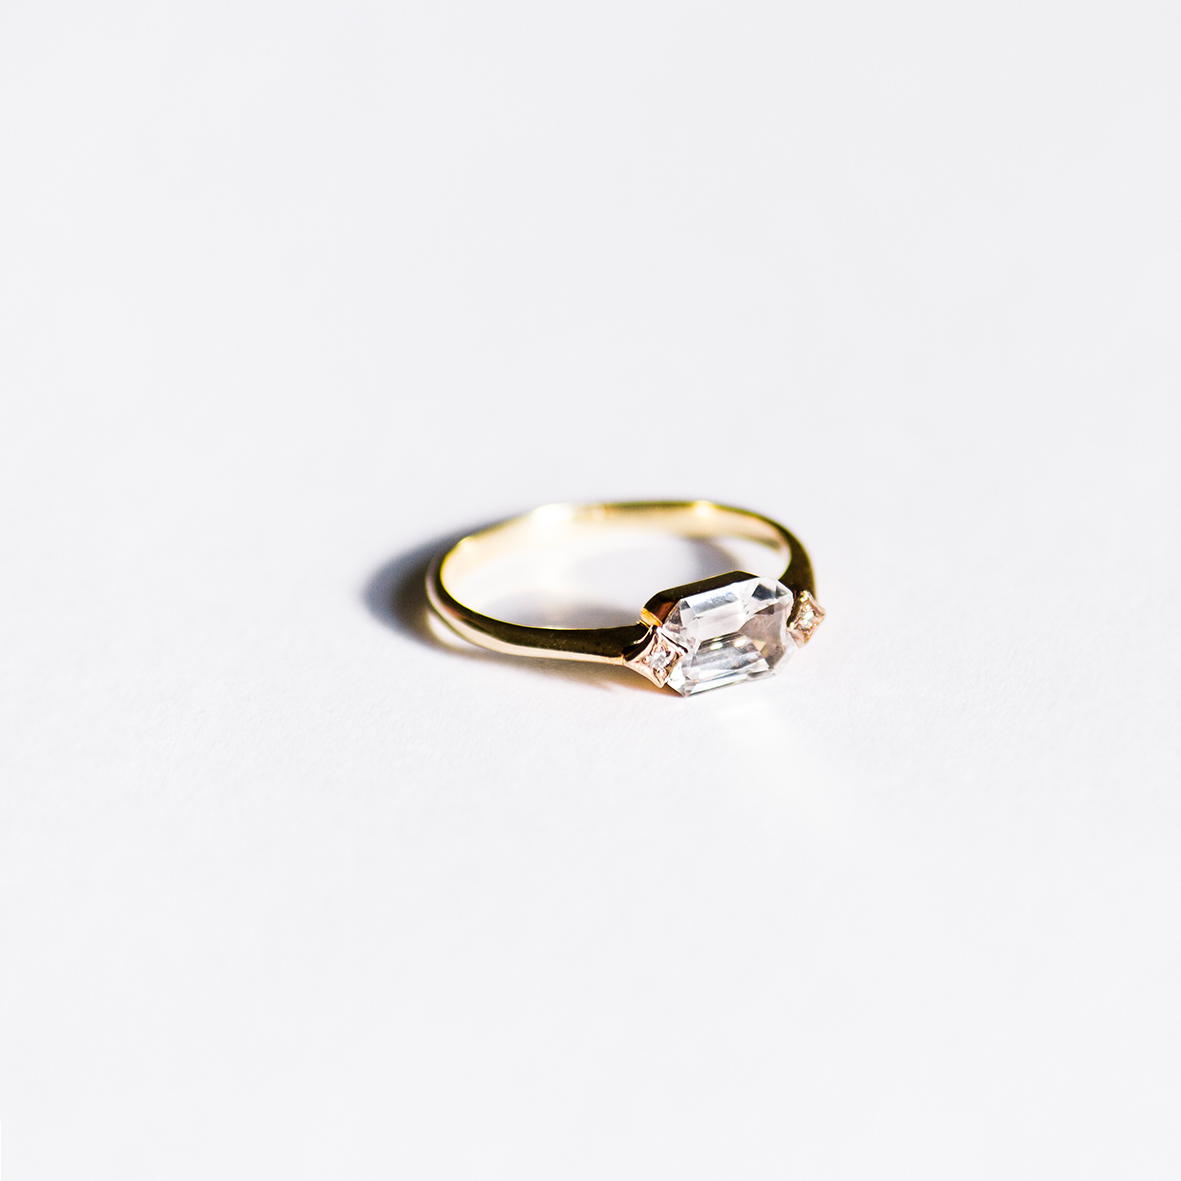 5. OONA_engagement_ficha1_single sapphire ring copia